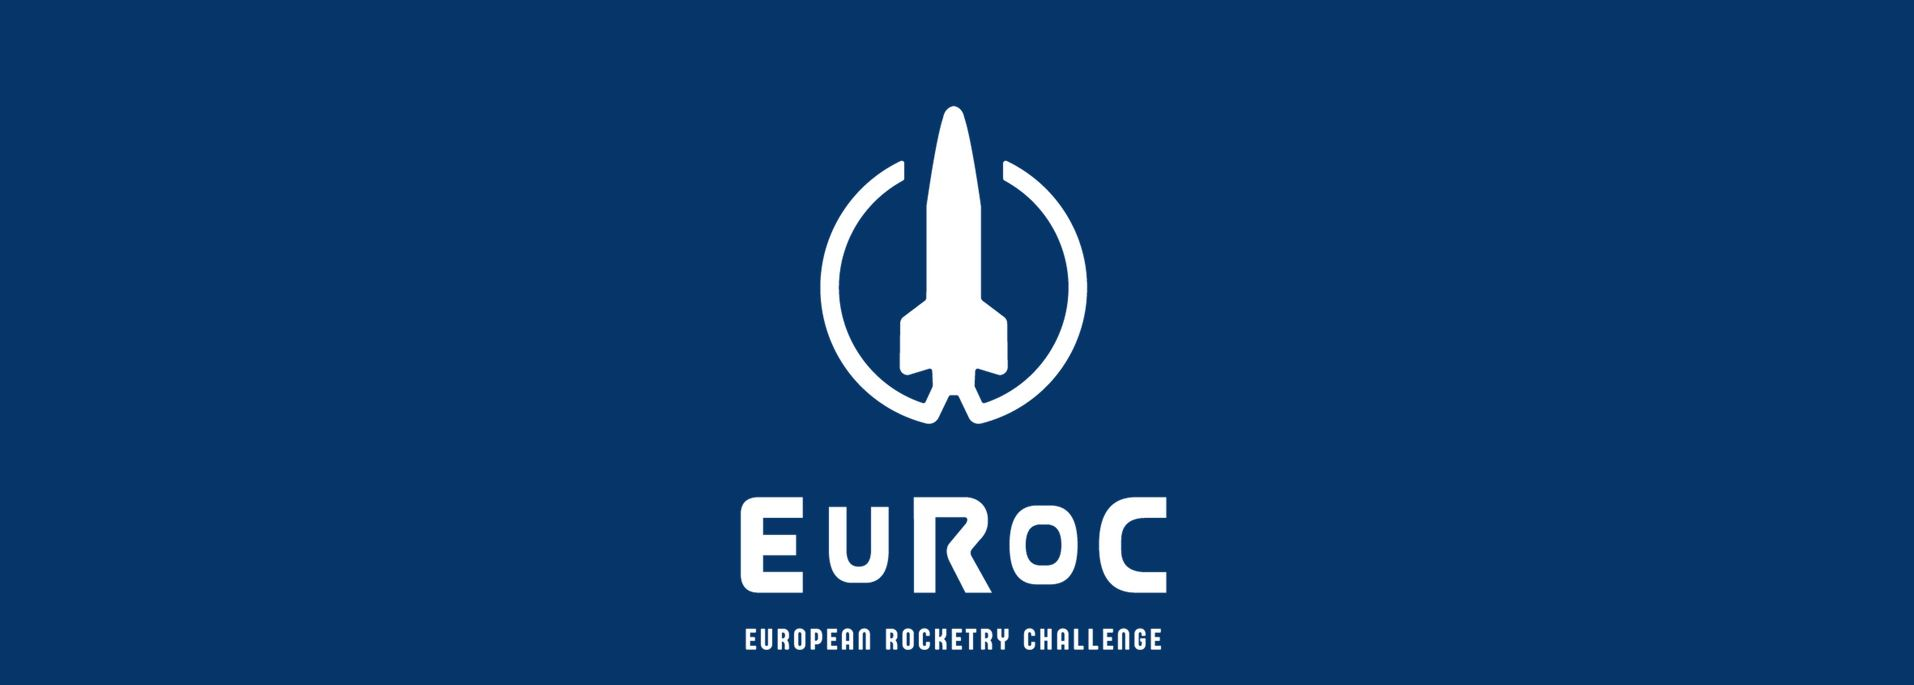 euroc competition banner